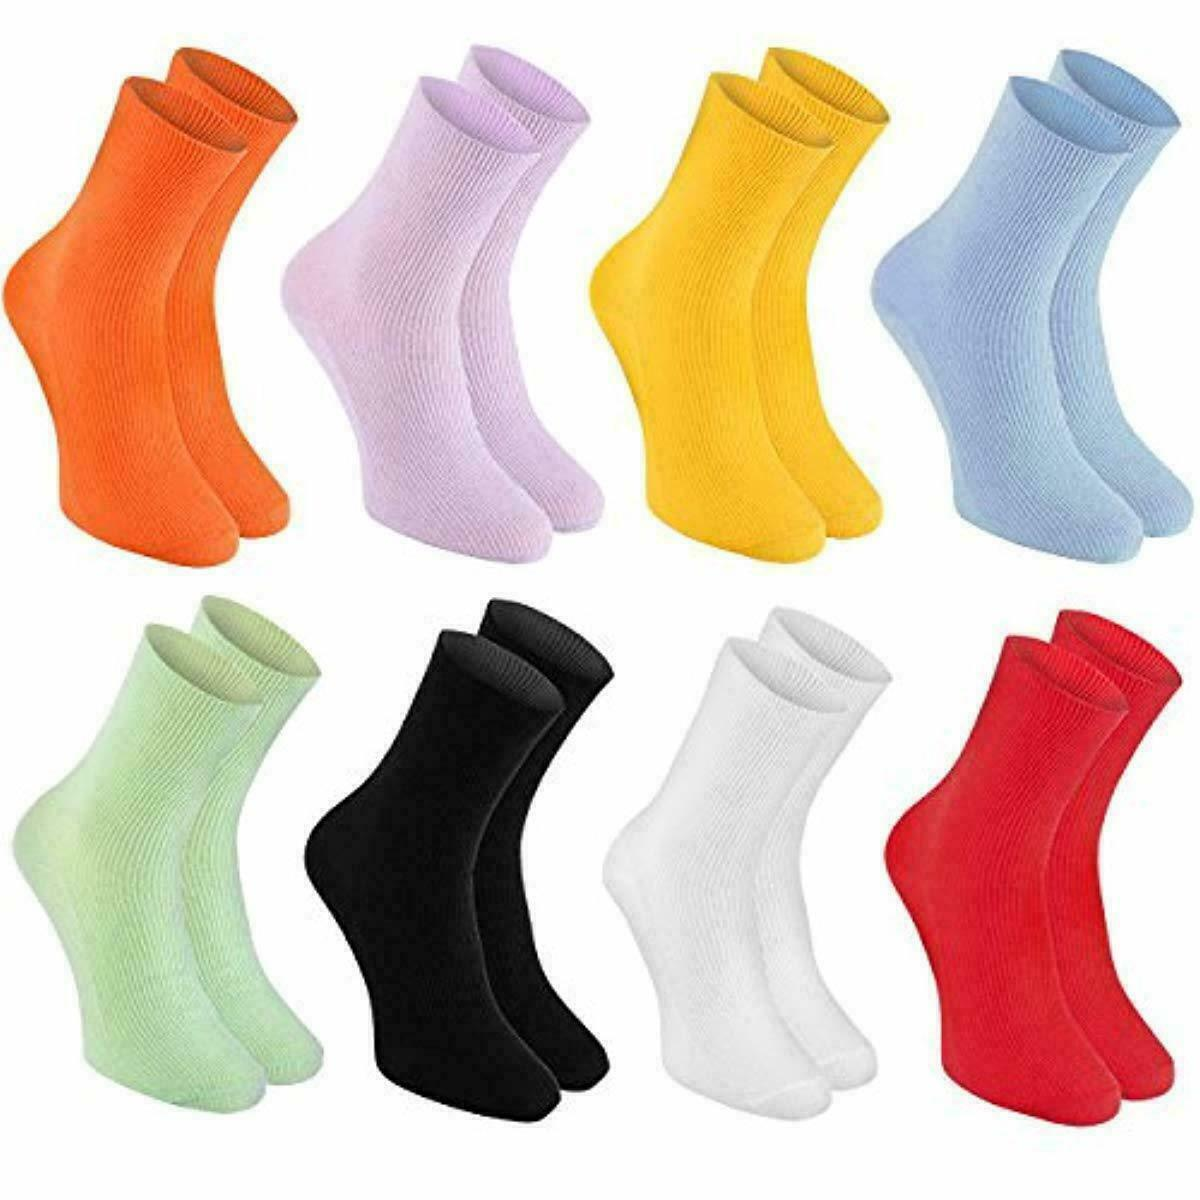 Primary image for 8 pairs of DIABETIC Non-Elastic Cotton Socks for SWOLLEN FEET for Mens & Womens